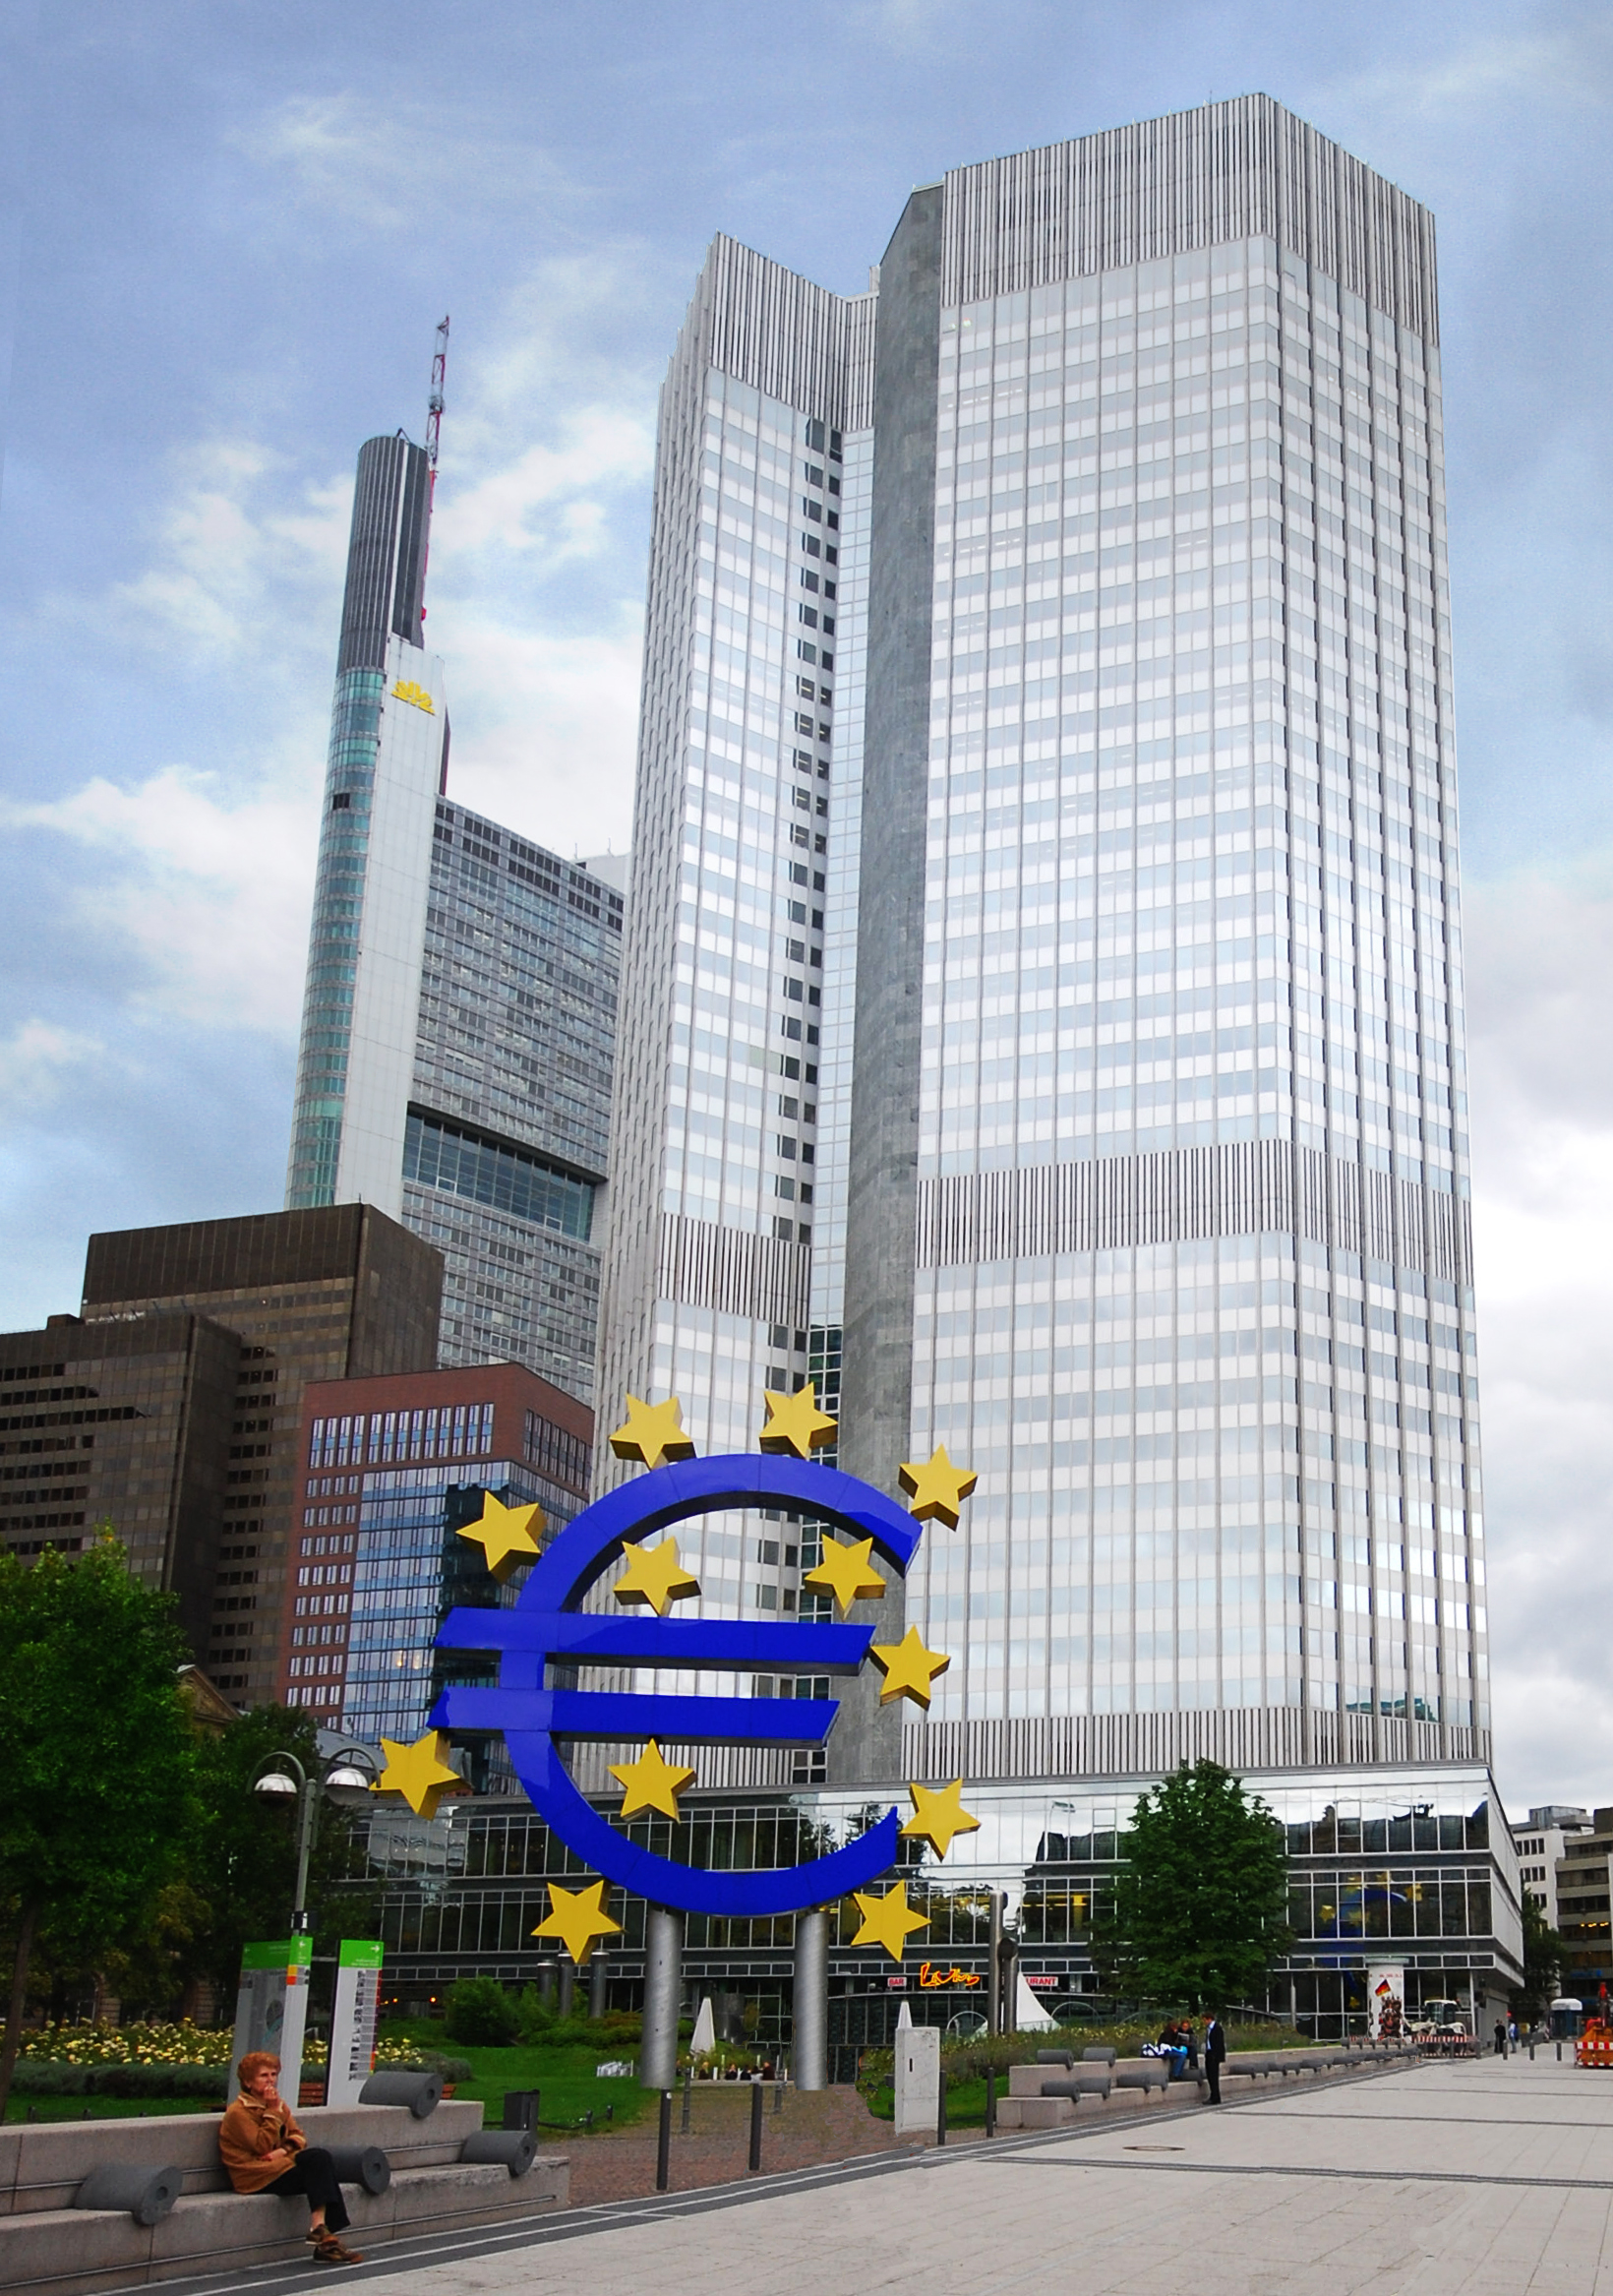 File:European Central Bank 041107.jpg - Wikimedia Commons